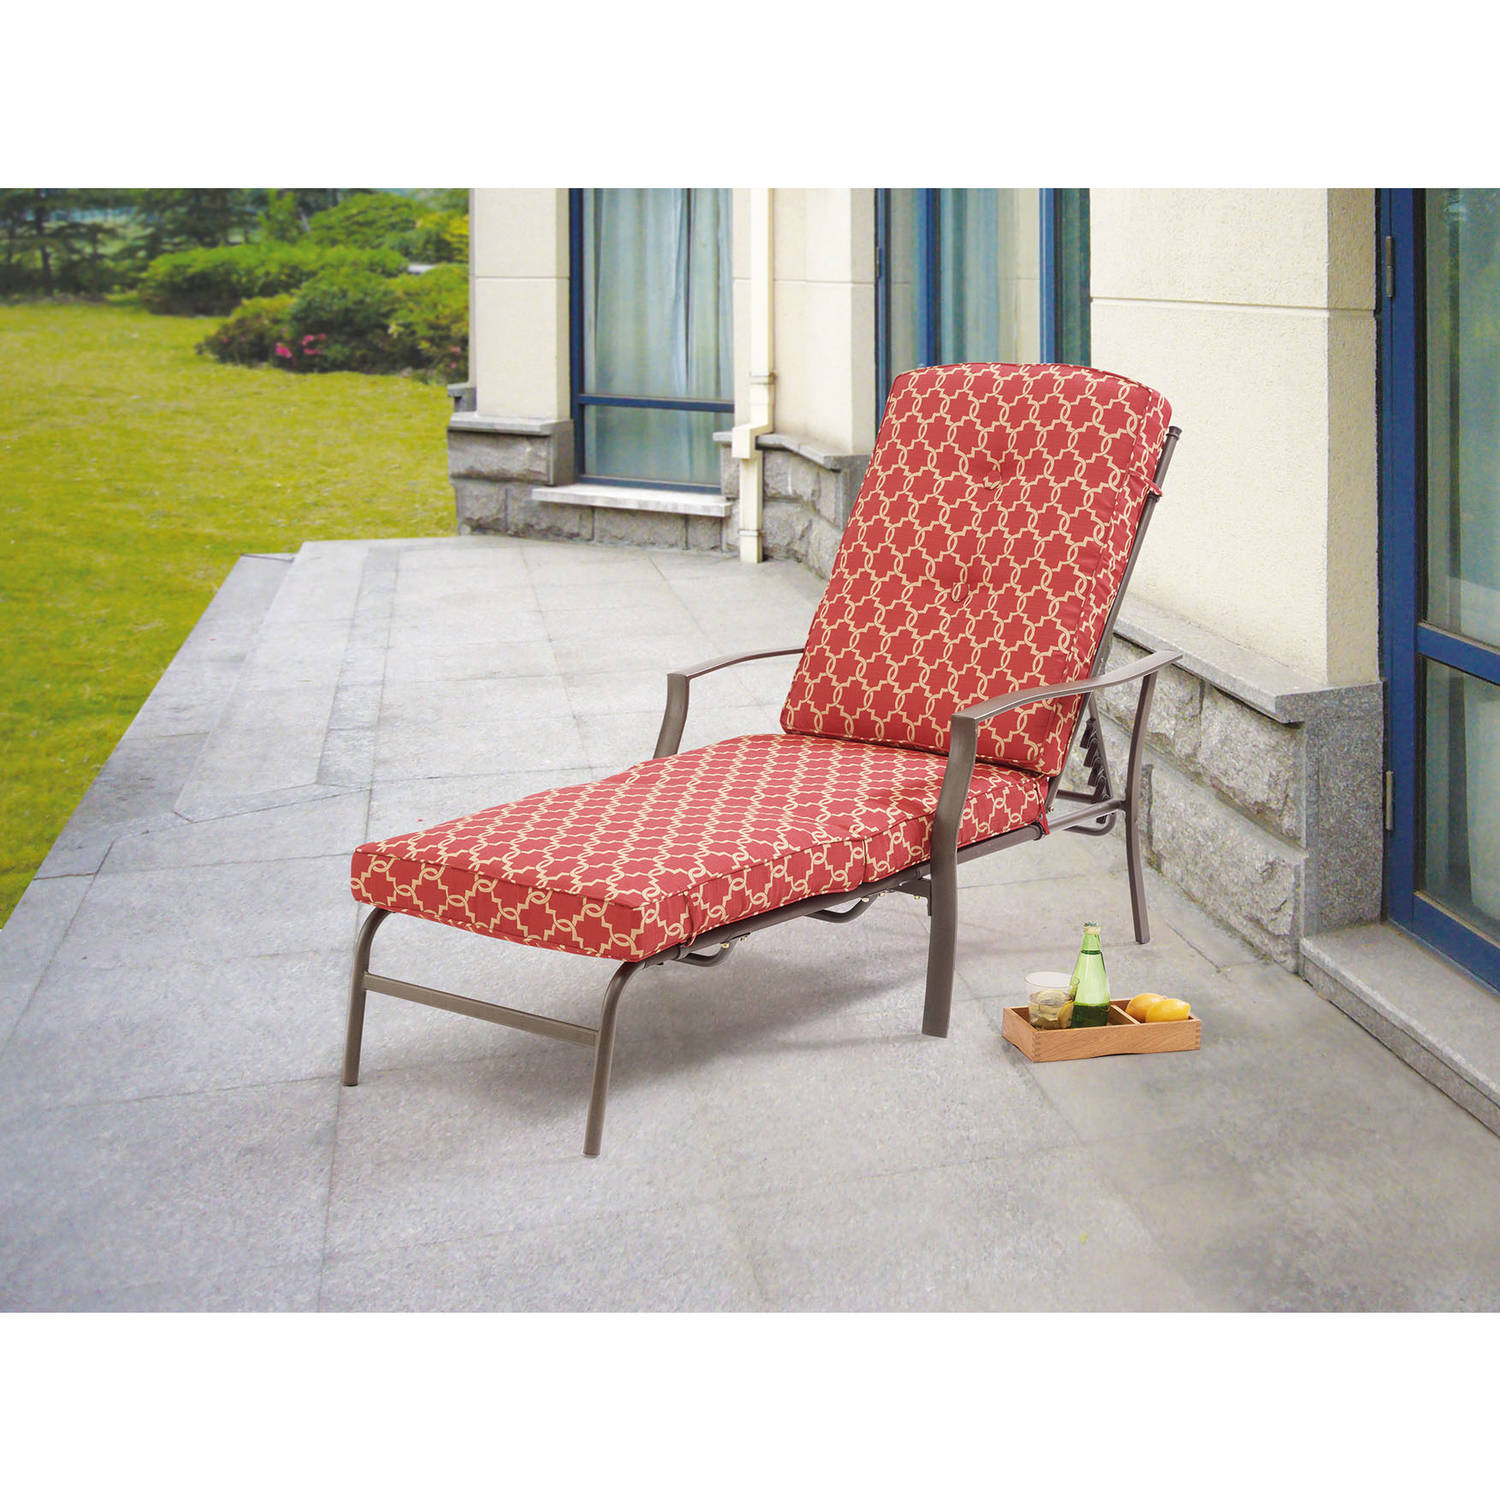 Costway Patio Foldable Chaise Lounge Chair Bed Outdoor Beach